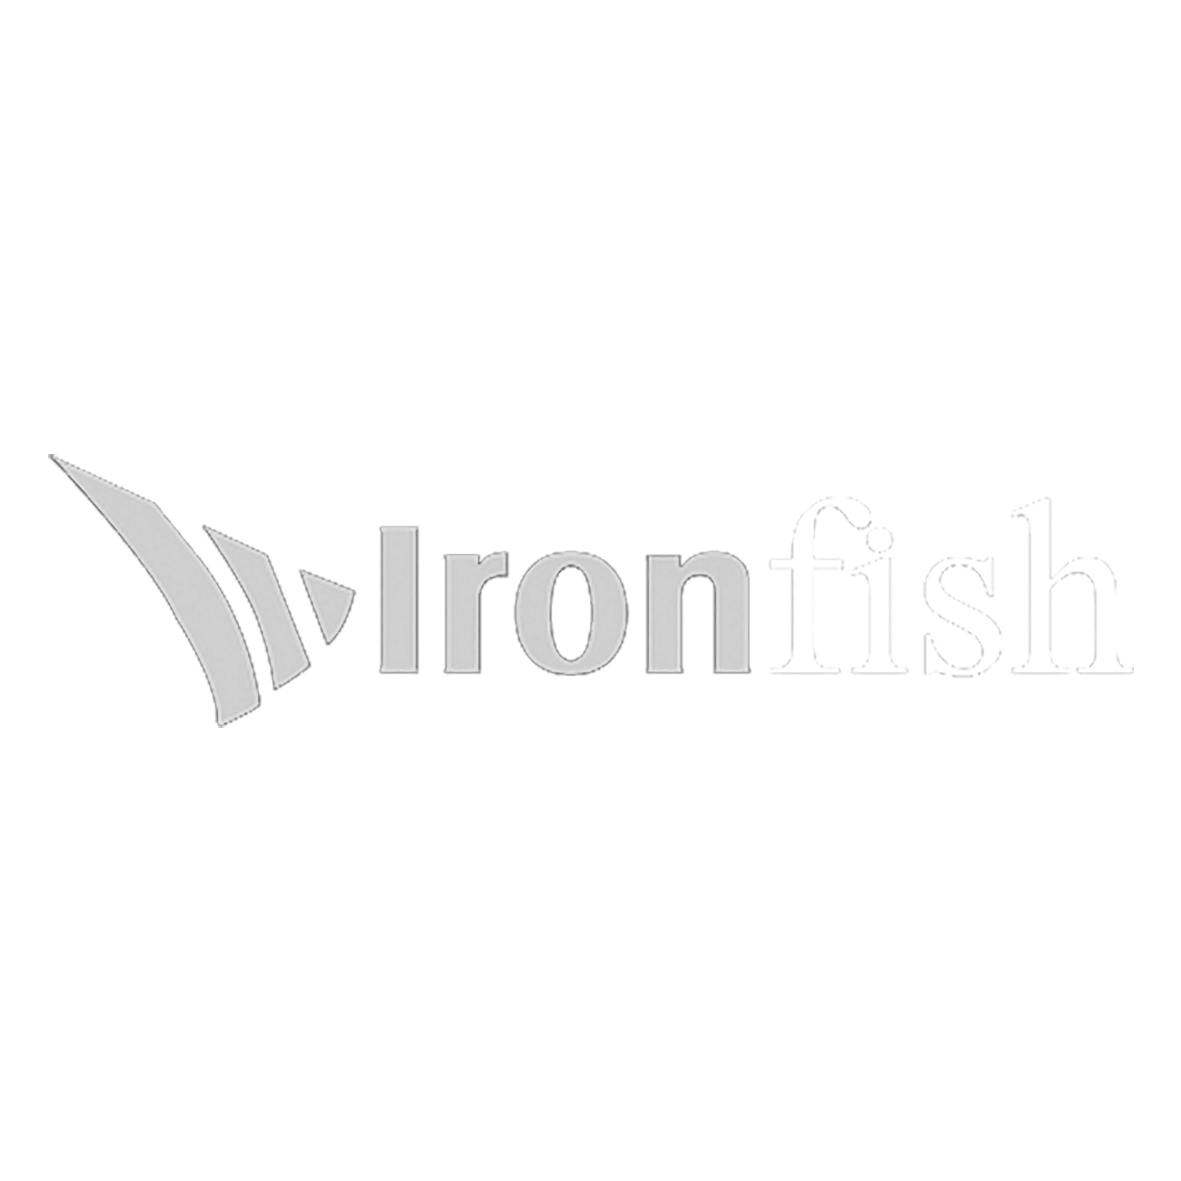 Ironfish-BW